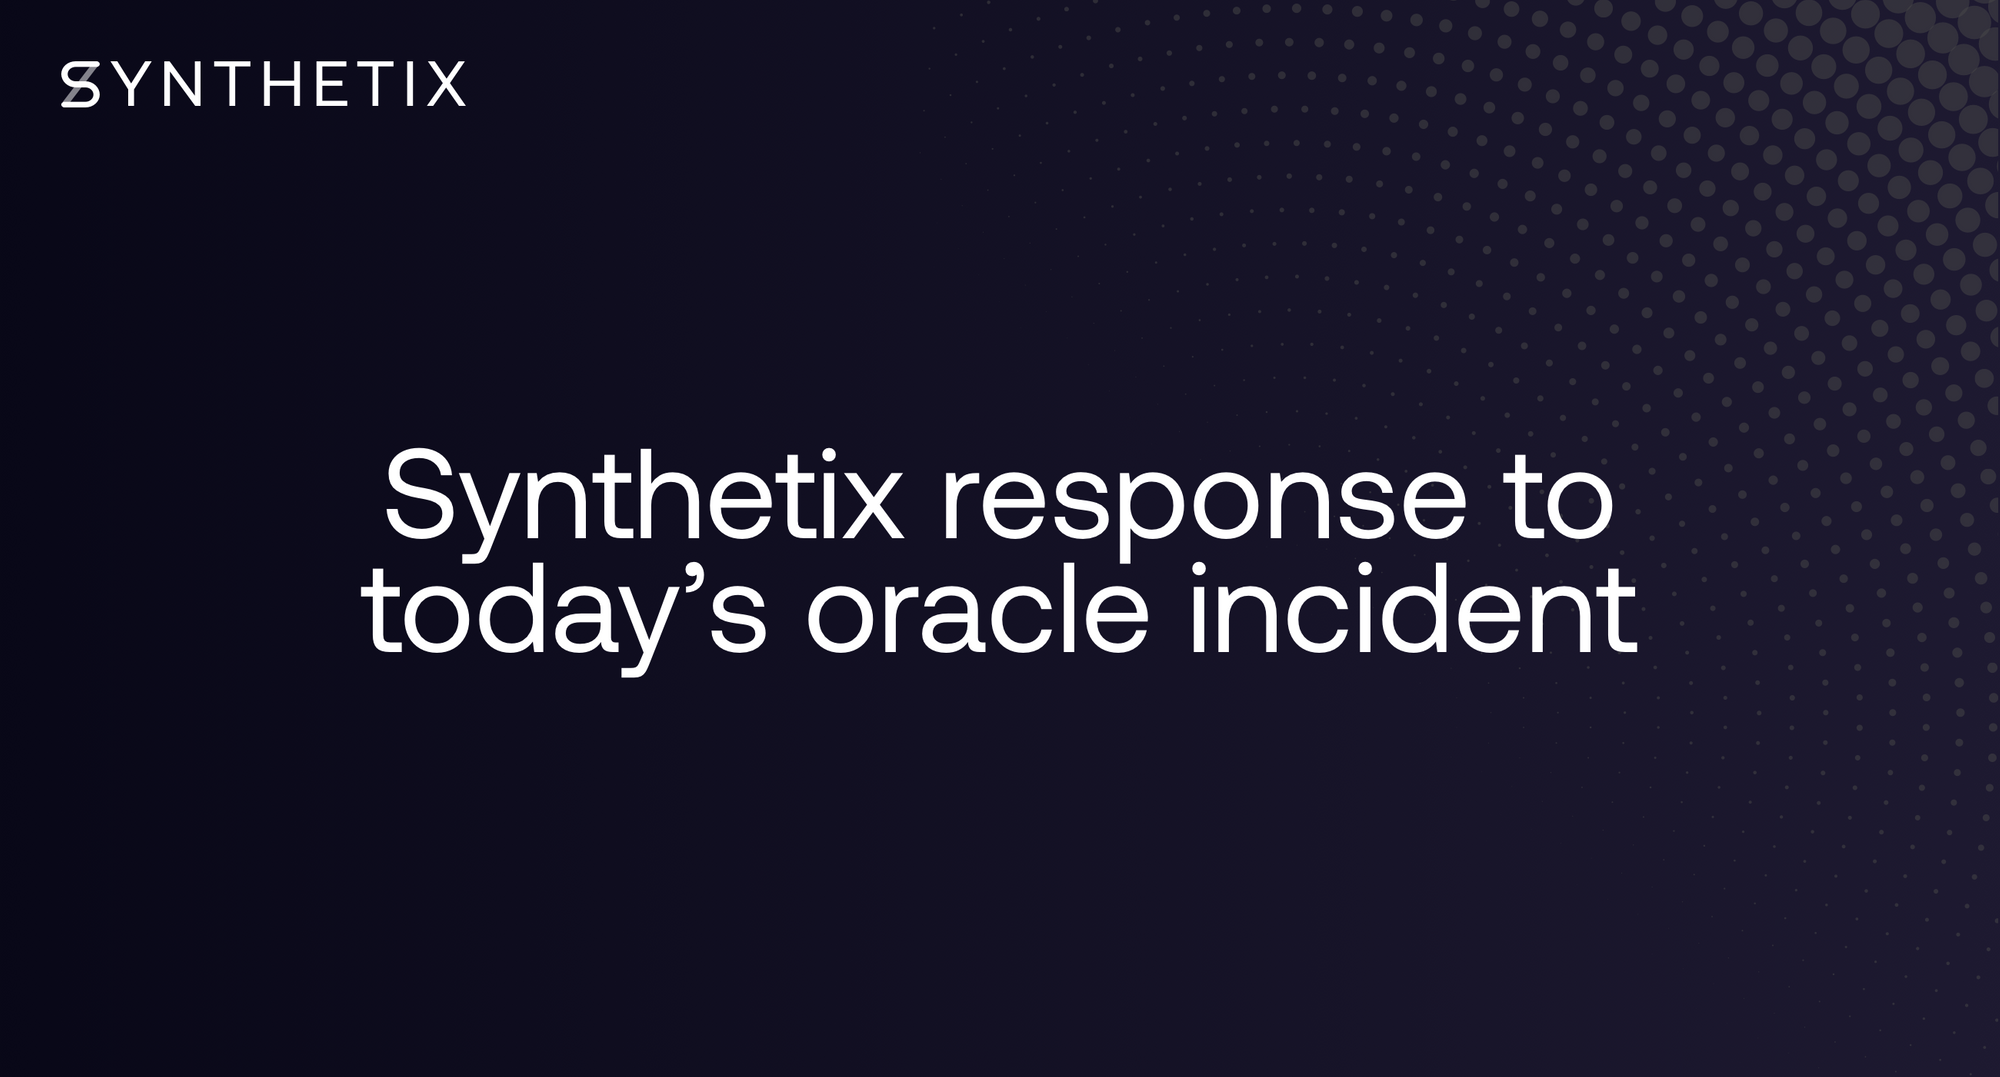 Synthetix Response to Oracle Incident